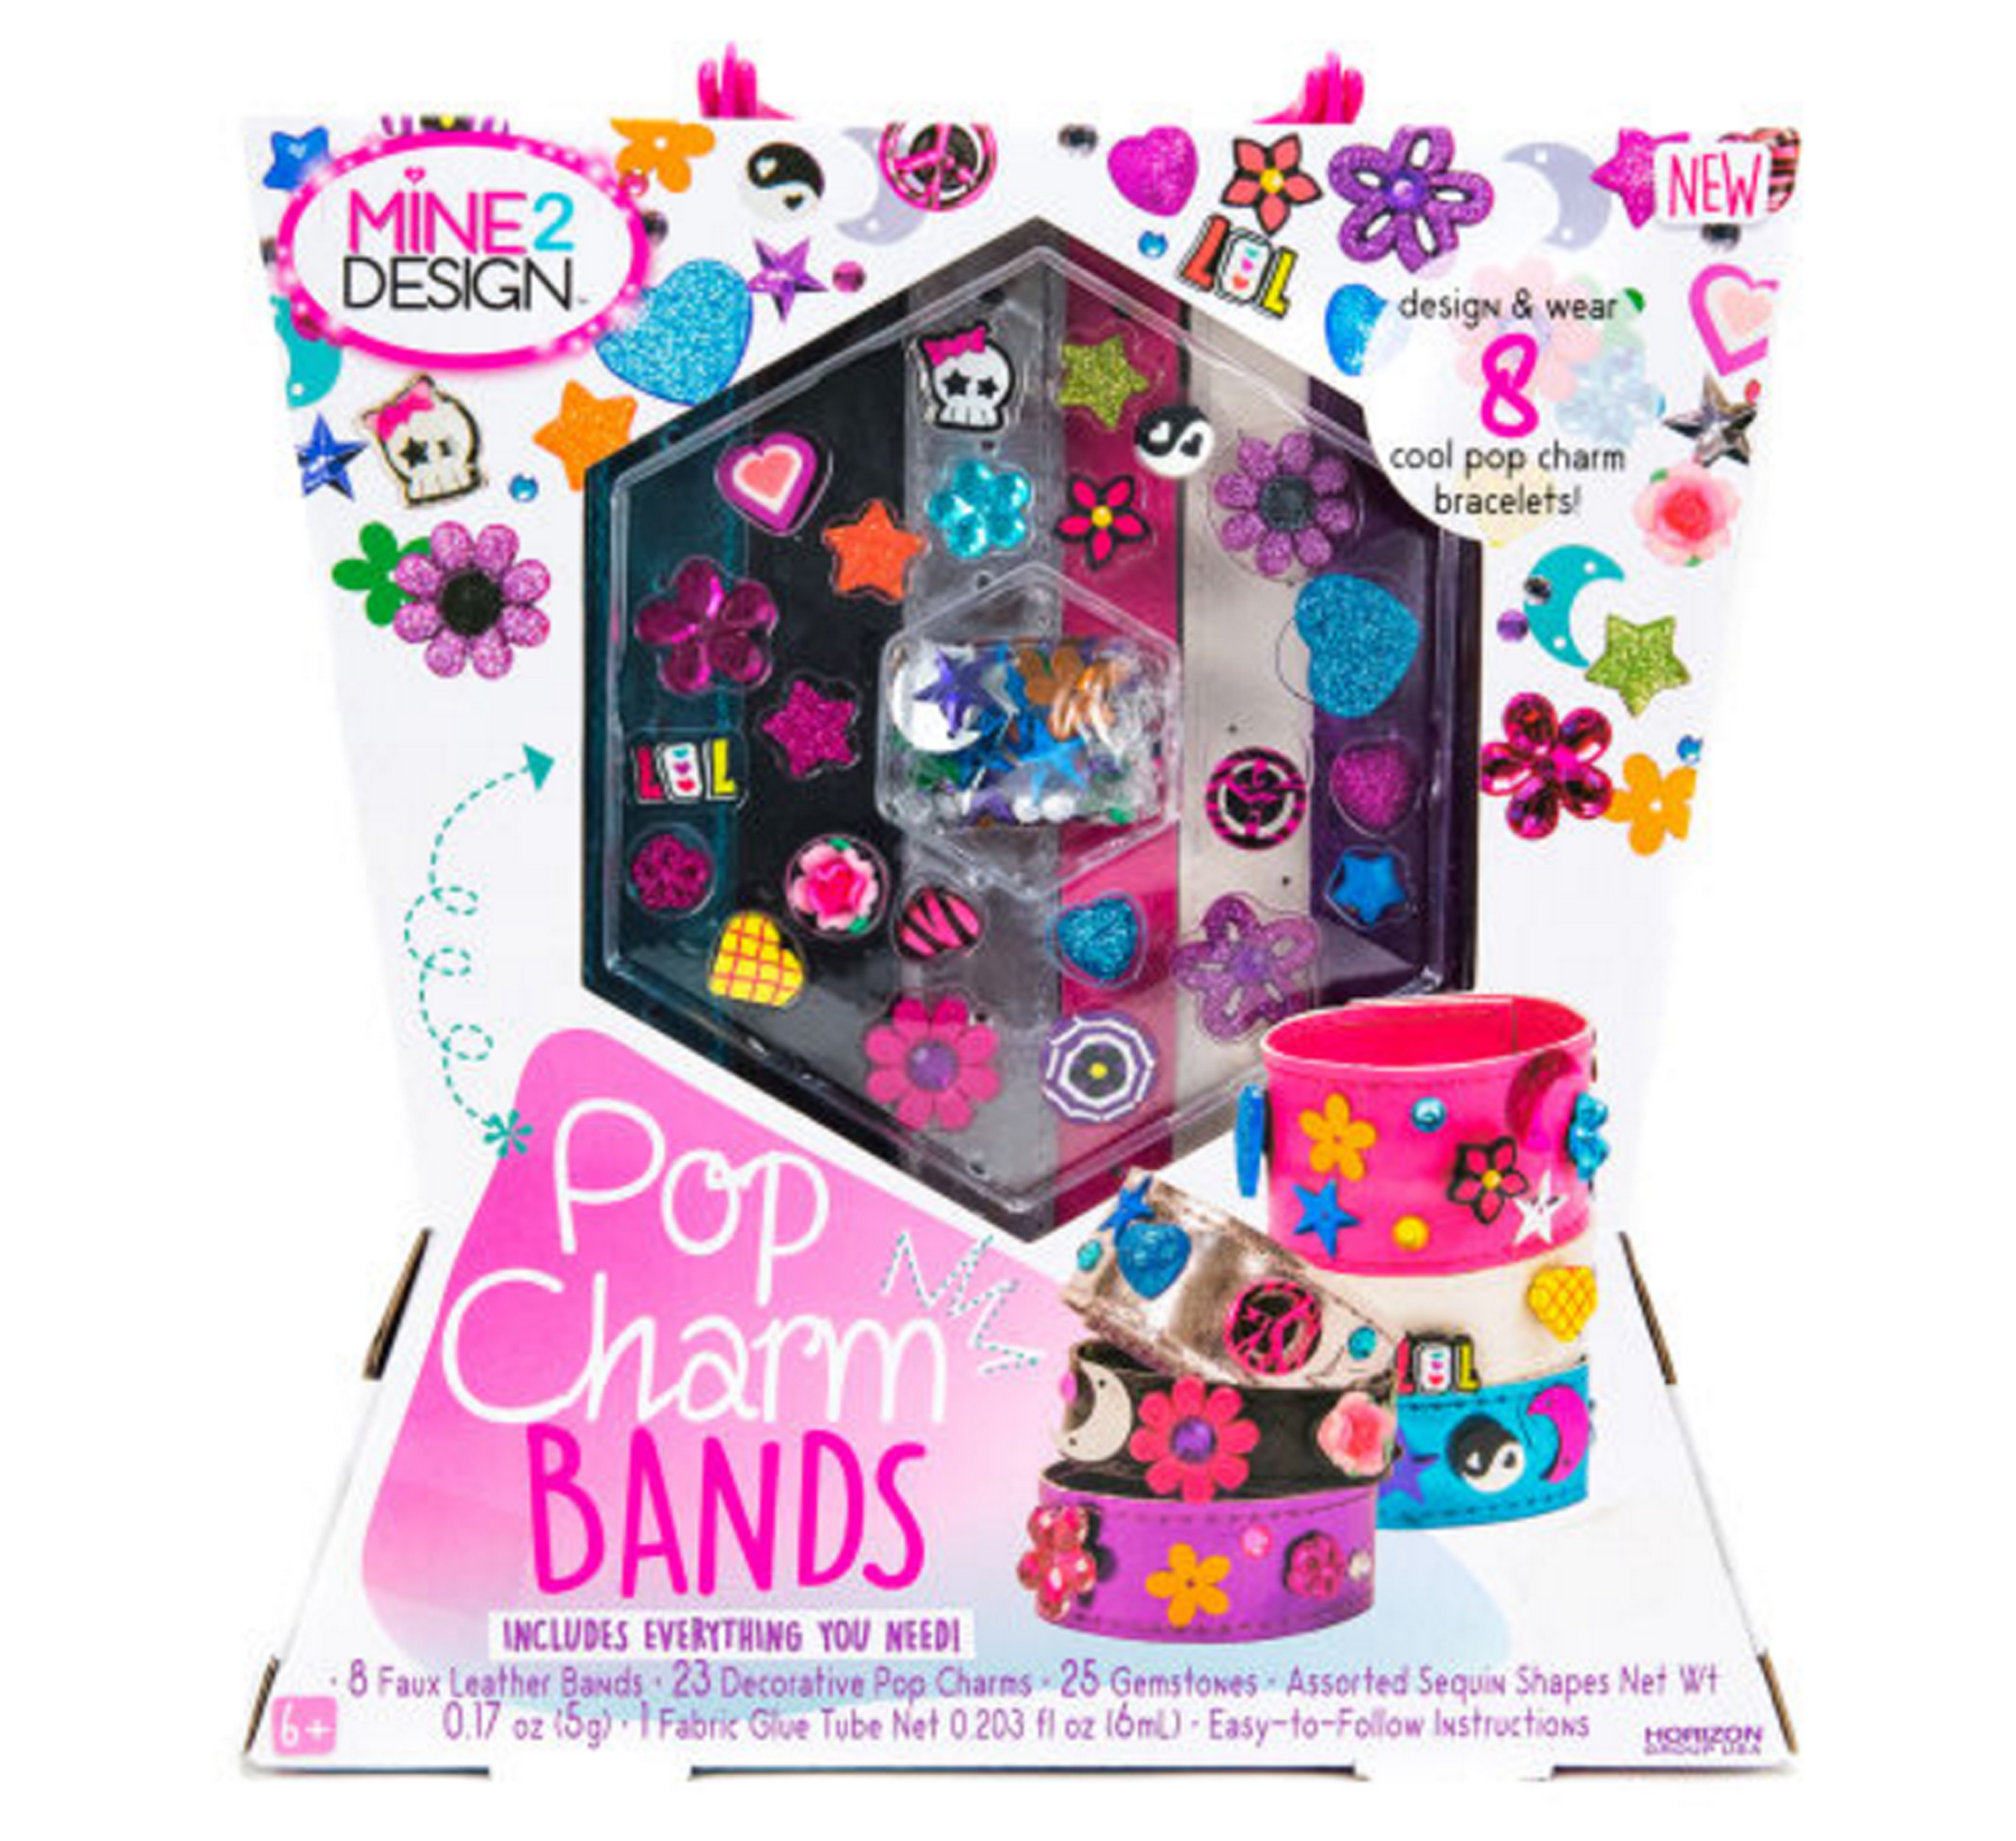 This Kites With Everything Needed To Create Trendy Bracelets, Including  Colorful Faux Leather Bands